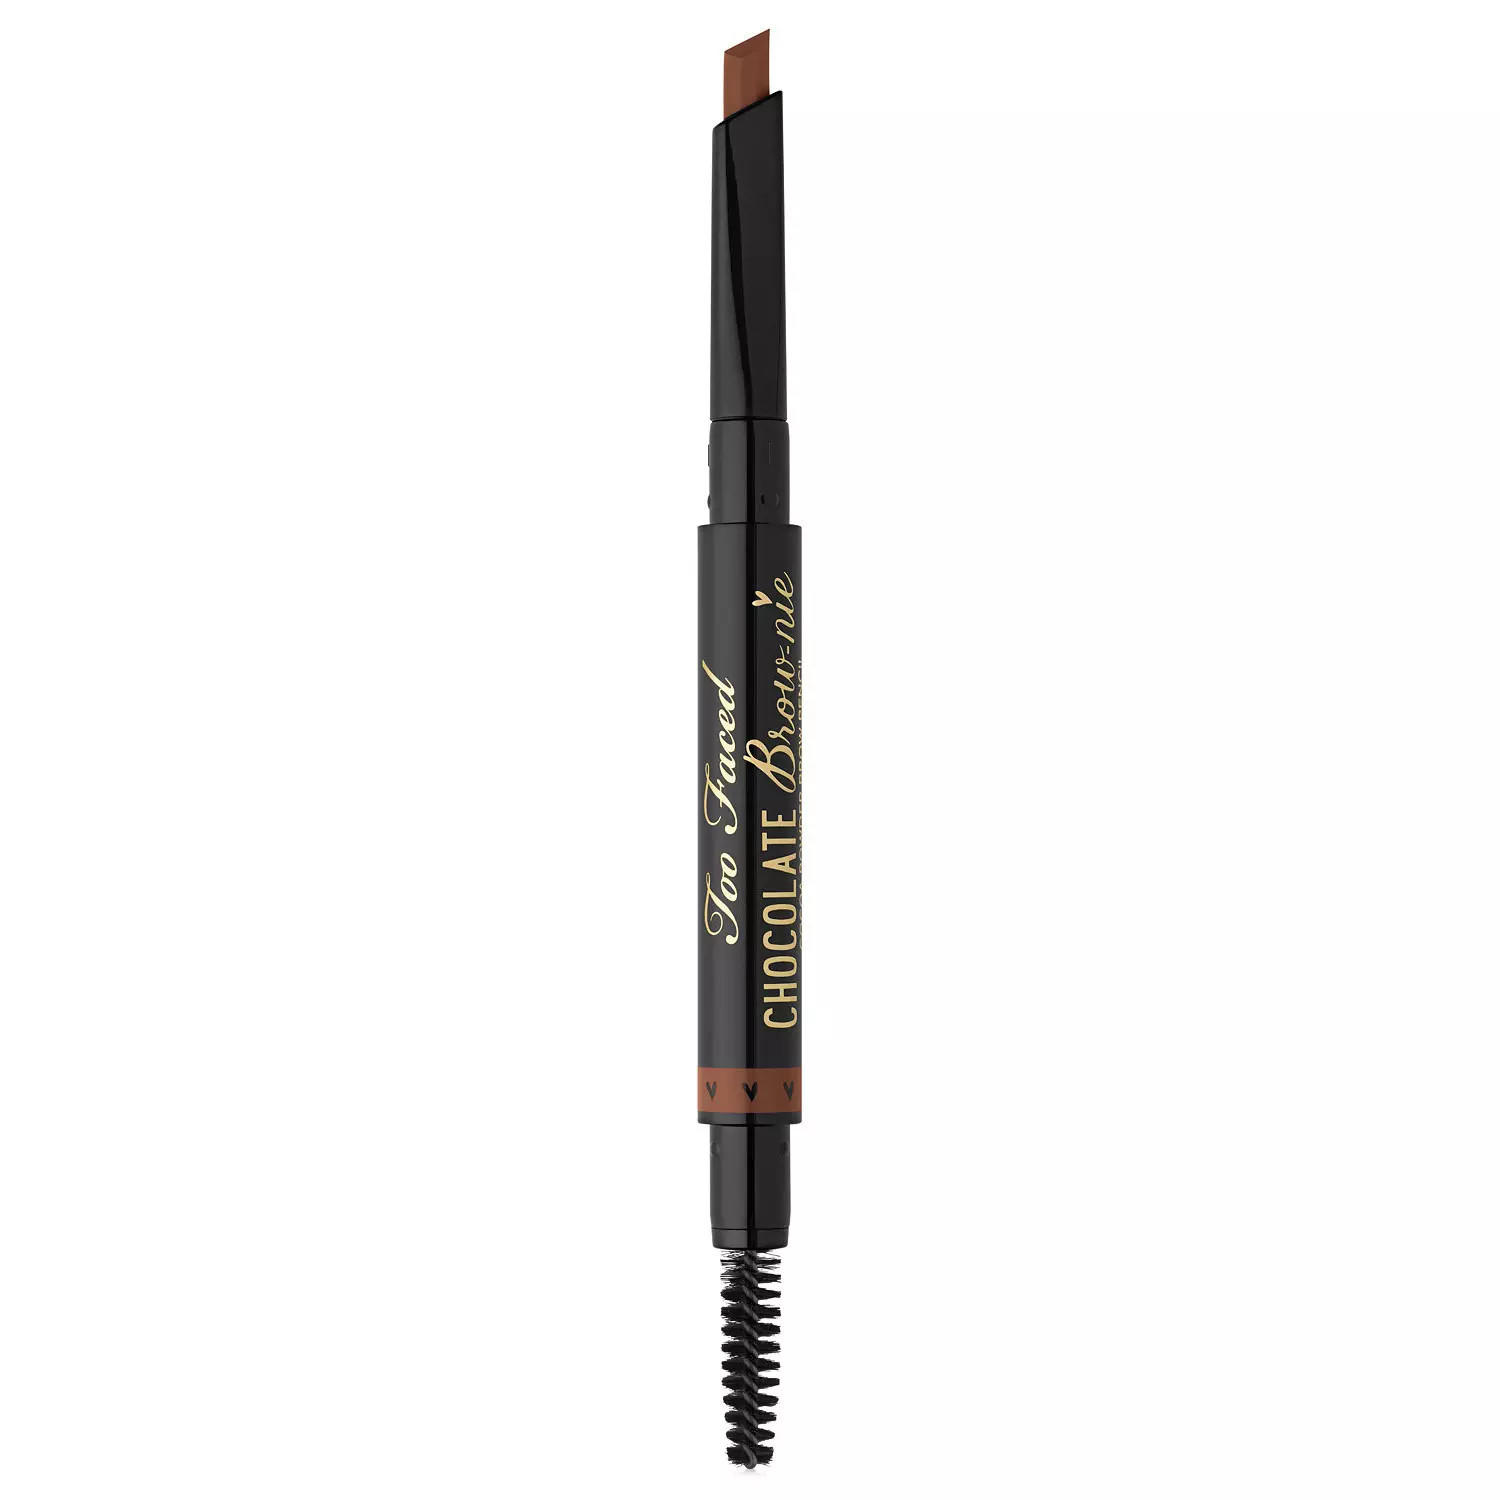 Too Faced Chocolate Brow-nie Cocoa Powder Brow Pencil Soft Brown